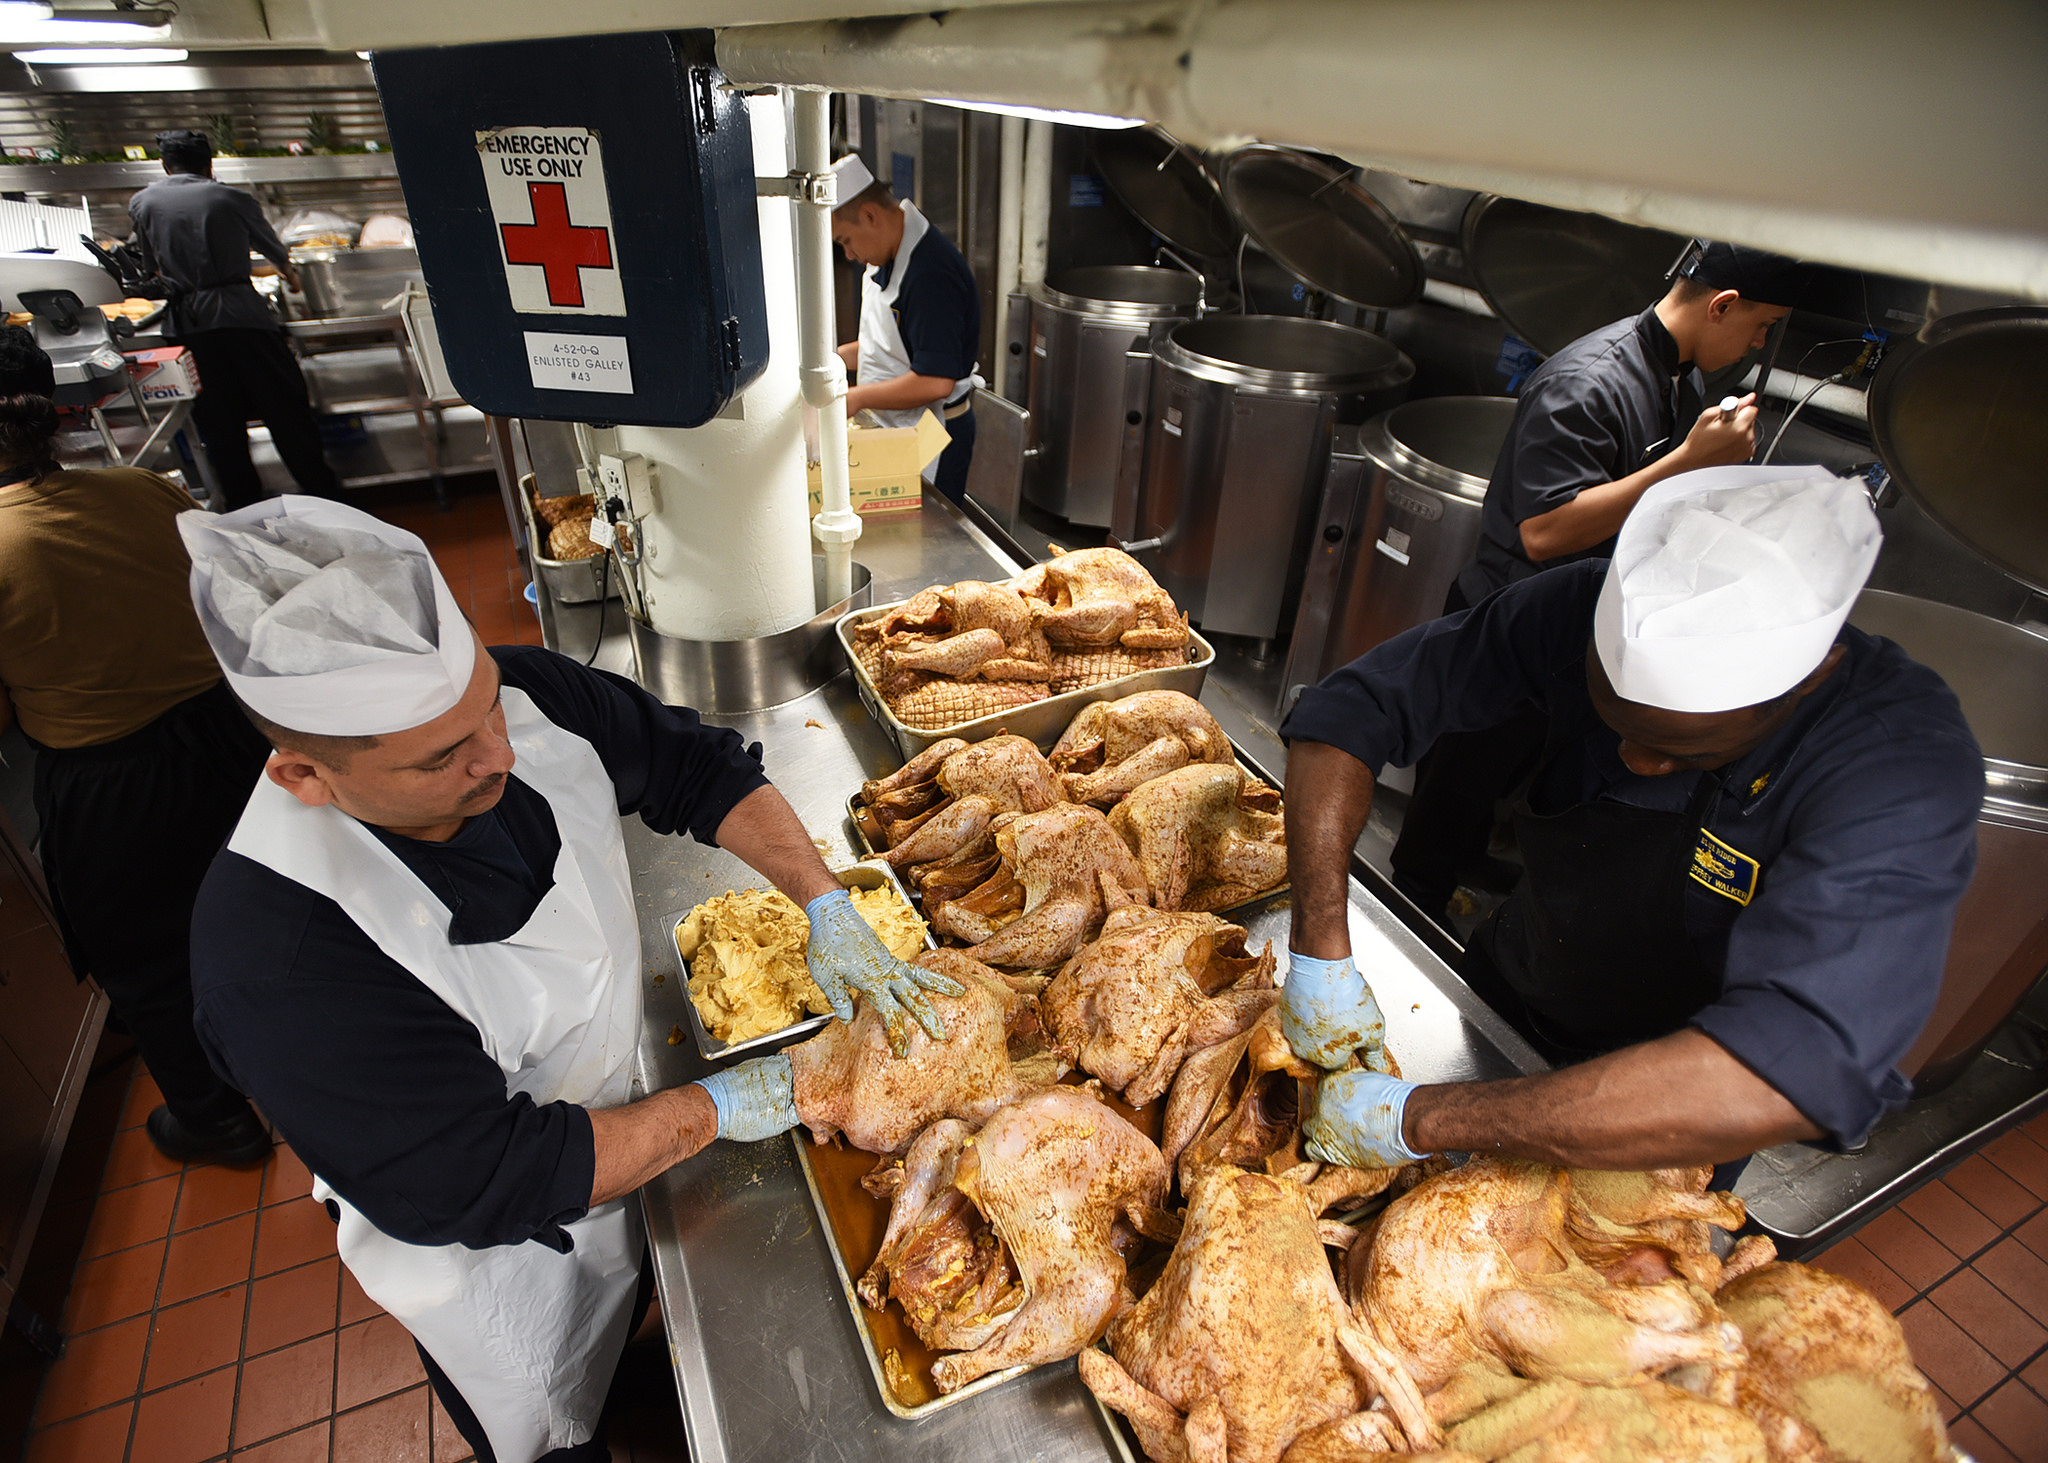 Sailors attached to the U.S. 7th Fleet flagship USS Blue Ridge (LCC 19) prepare turkeys for the ship's Thanksgiving celebration on Nov. 21, 2018, at Yokosuka, Japan. Navy culinary specialists across the fleet are preparing an estimated 112,000 pounds of roast turkey, 21,000 pounds of stuffing, 27,100 pounds of mashed potatoes, 18,500 pounds of sweet potatoes, 5,400 pounds of cranberry sauce, and 2,300 gallons of gravy. (MC3 Dylan McKay/Navy)